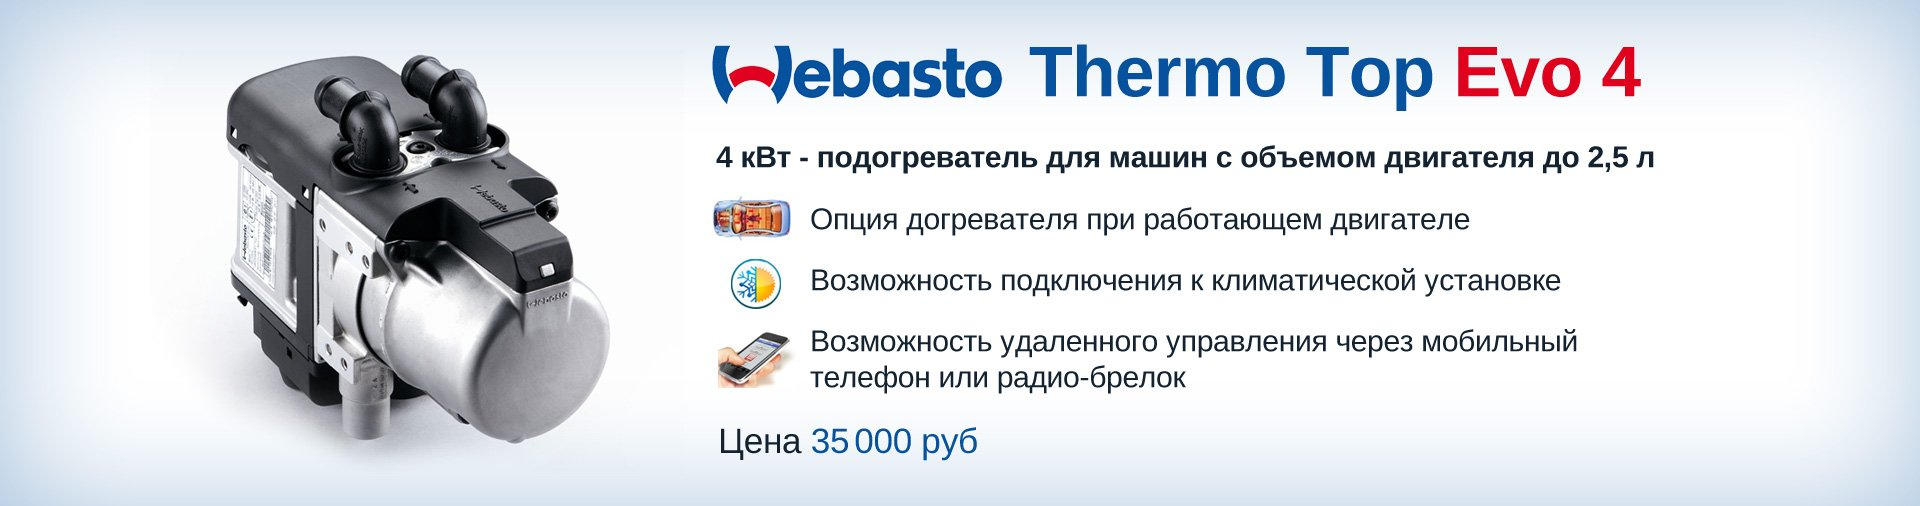 Webasto Thermo Top Evo 4